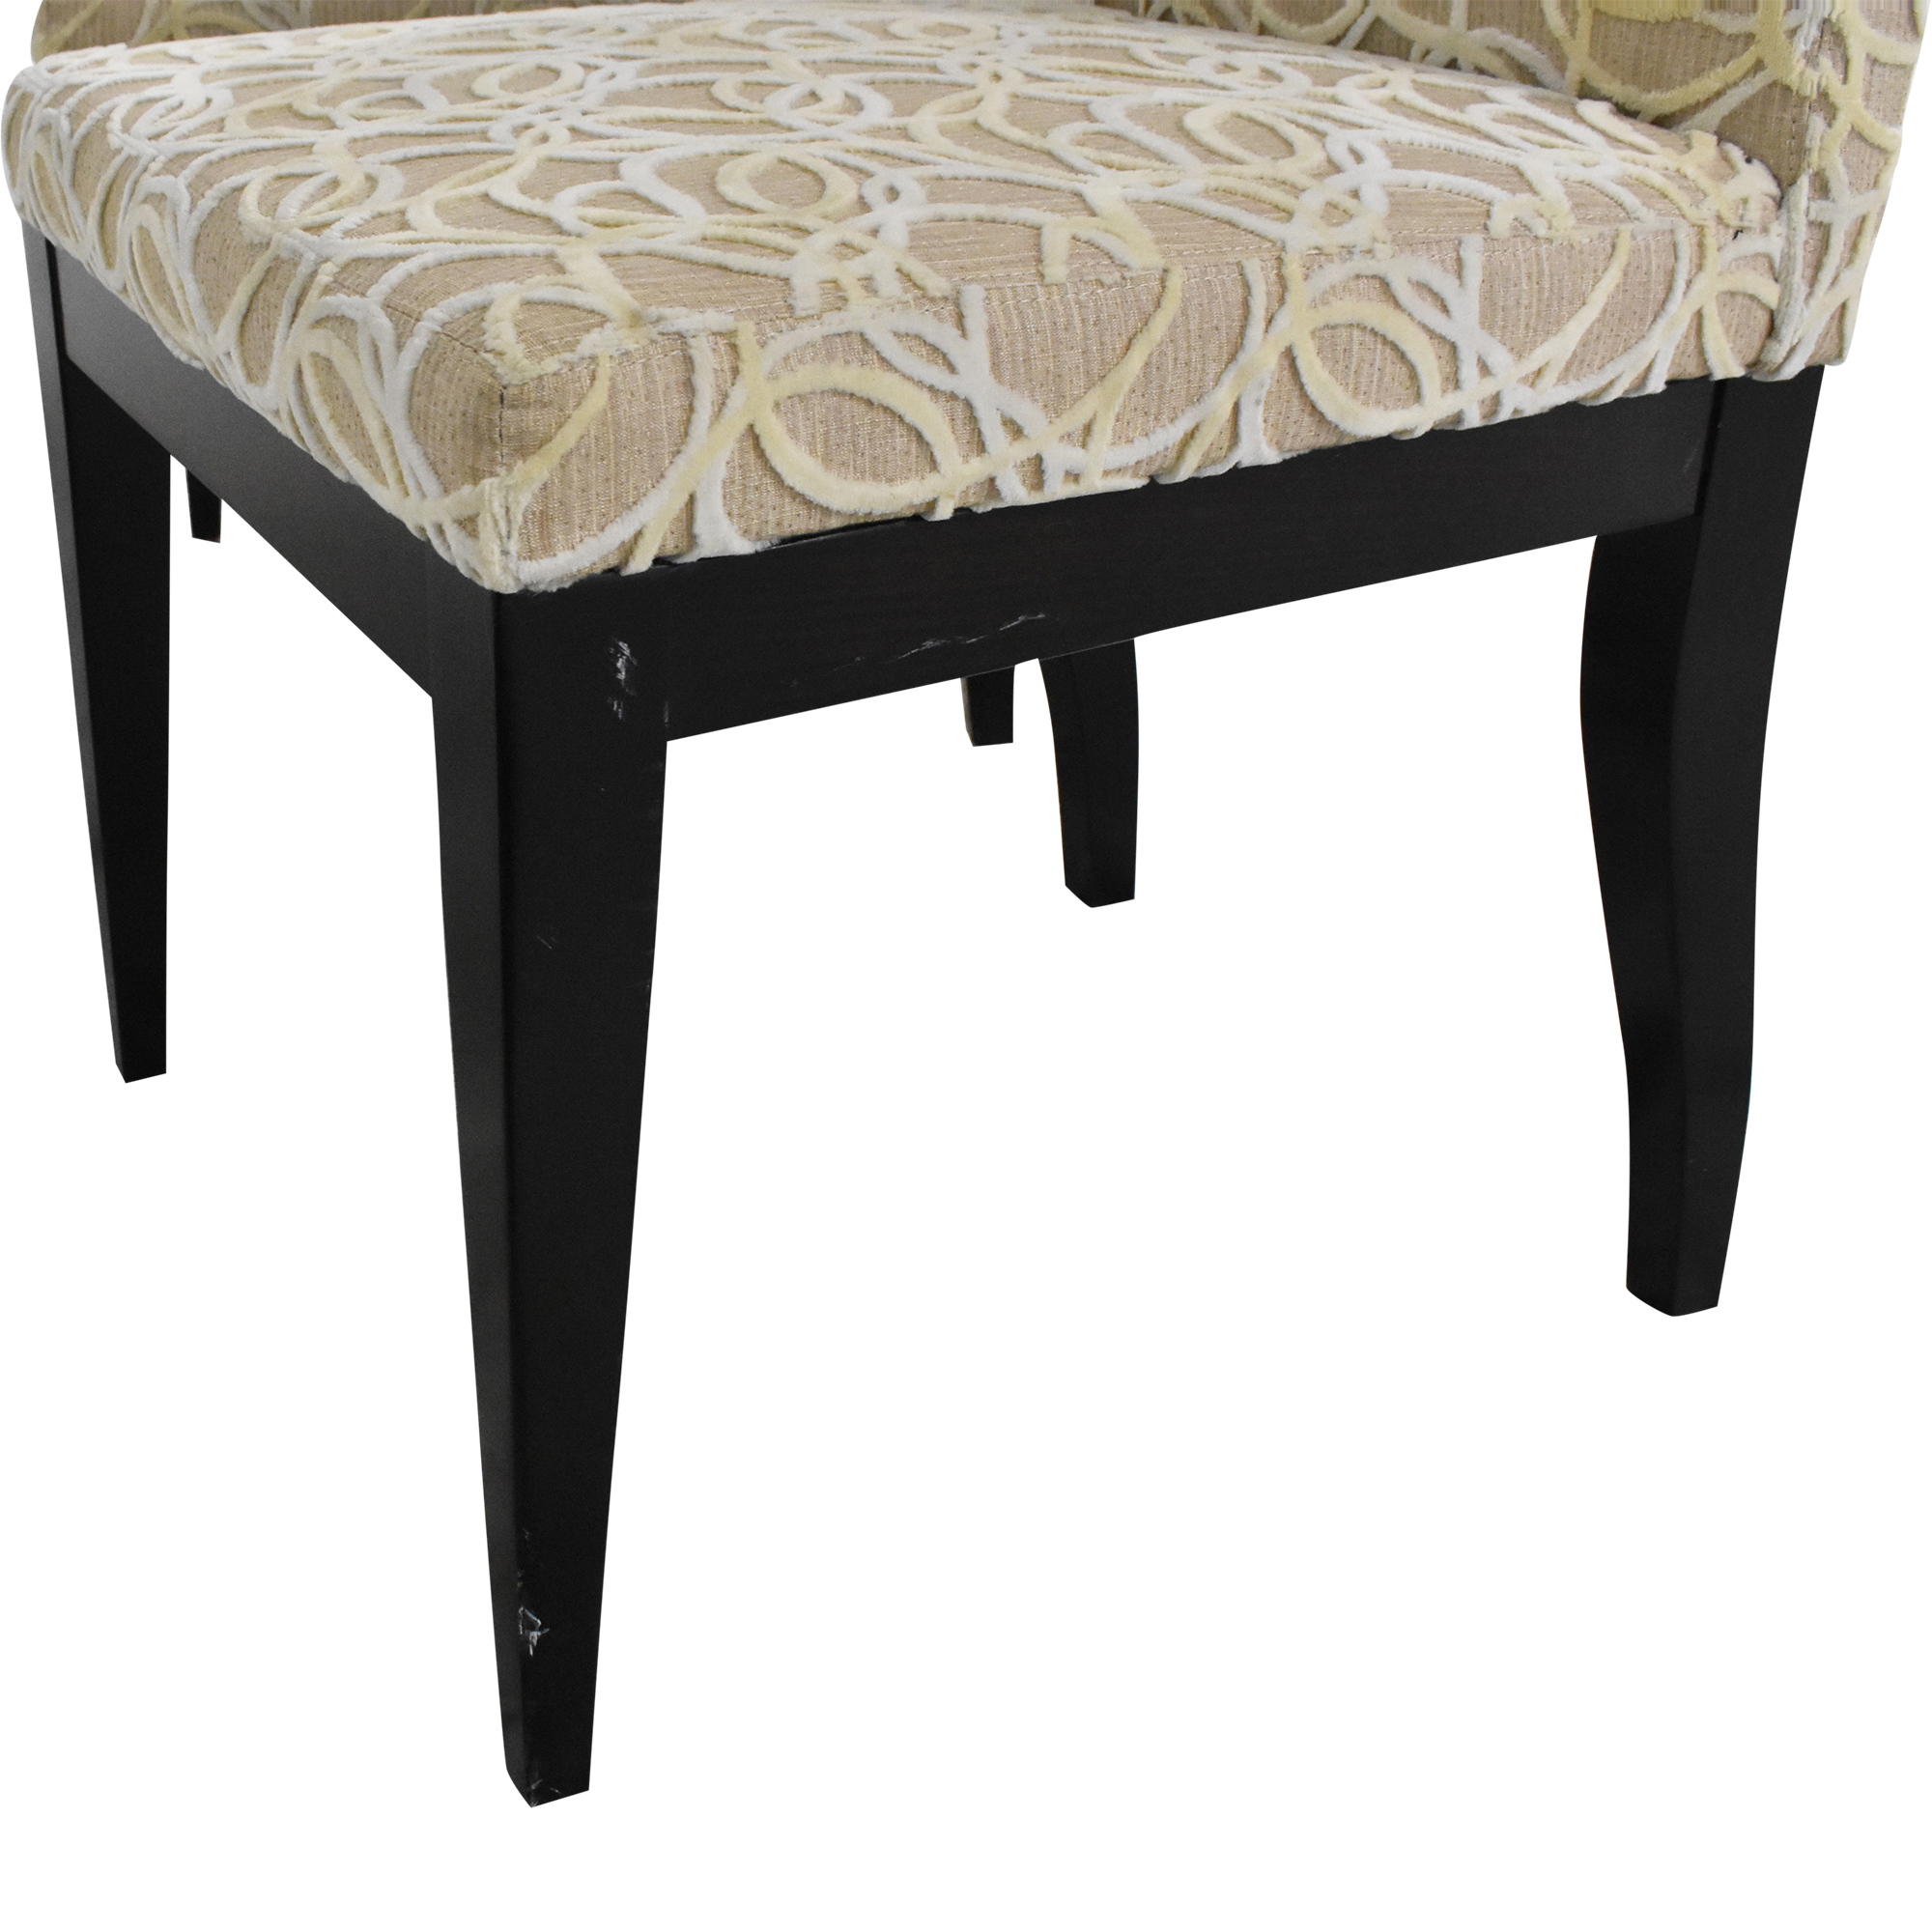 Bolier & Company Bolier & Company Upholstered Dining Chairs coupon